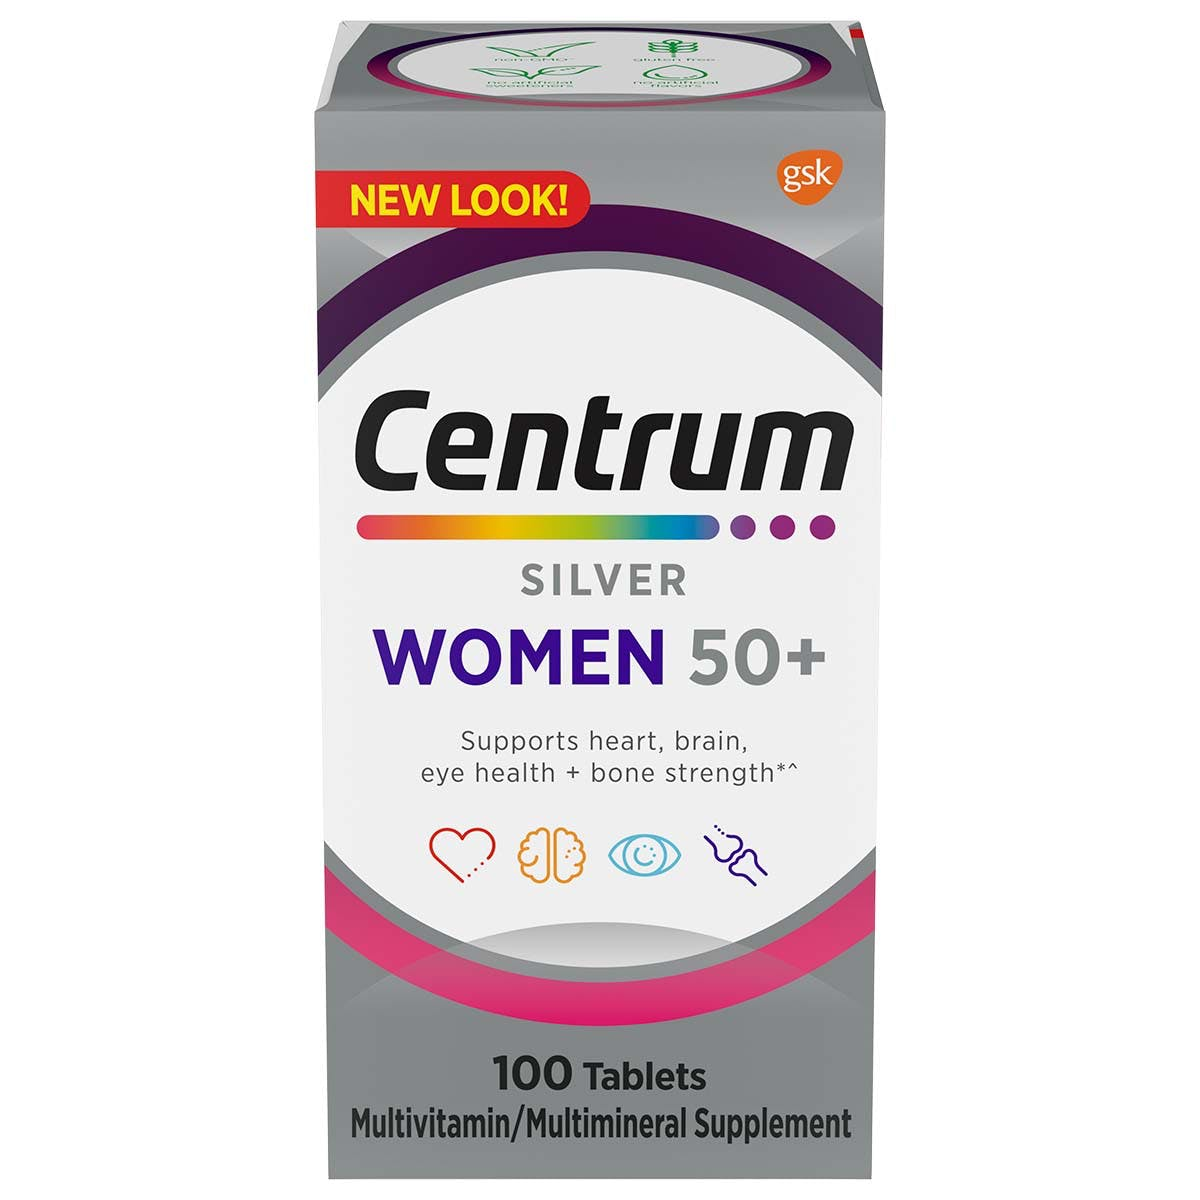 Box of Centrum Silver Womens multivitamins